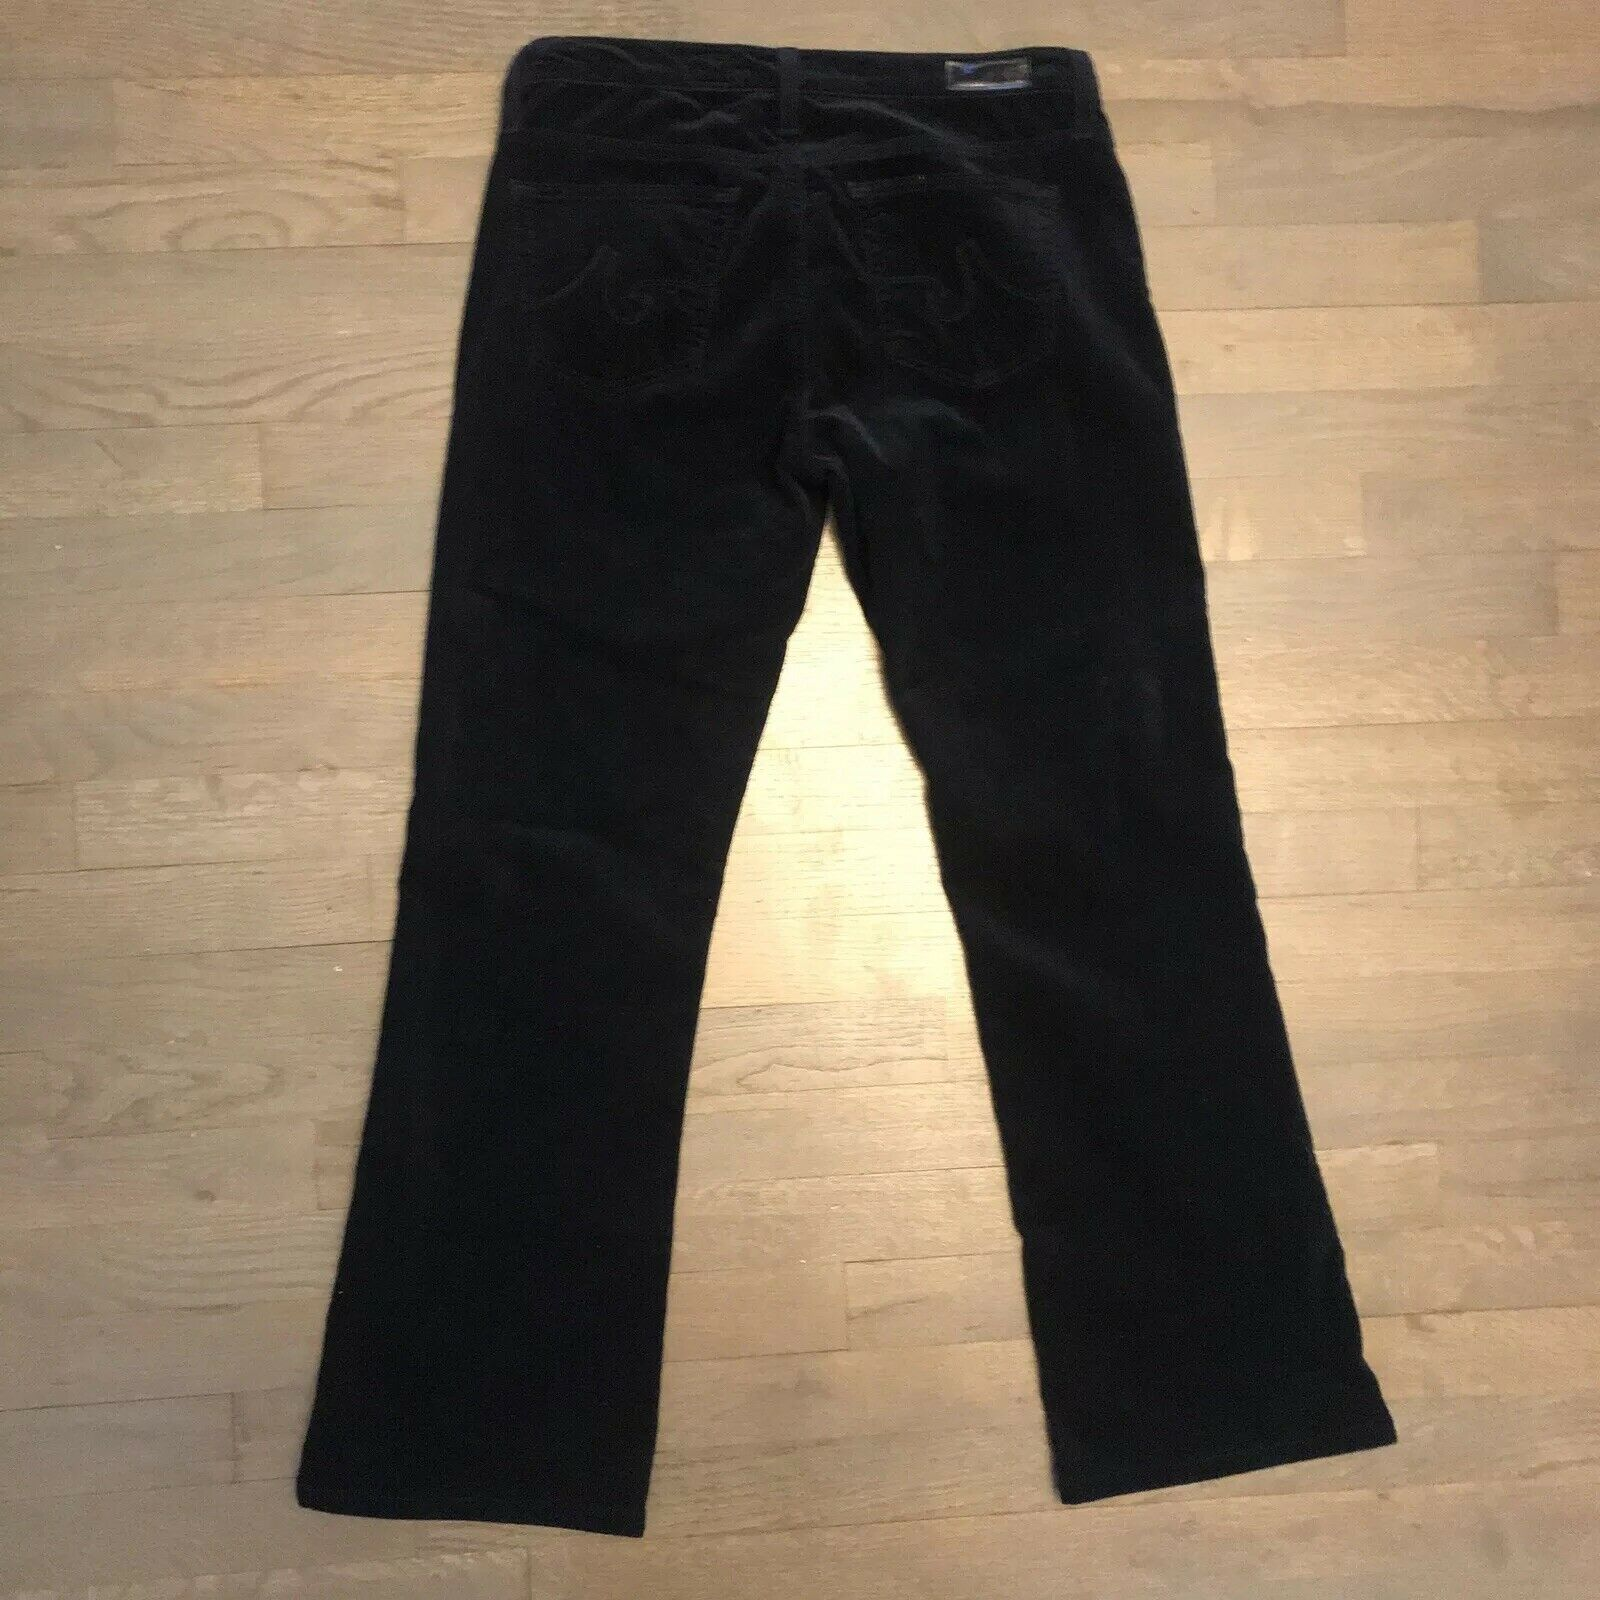 AG Adriano goldschmied The Angel Bootcut Stretch Corduroy Pants Woman's Size 29R